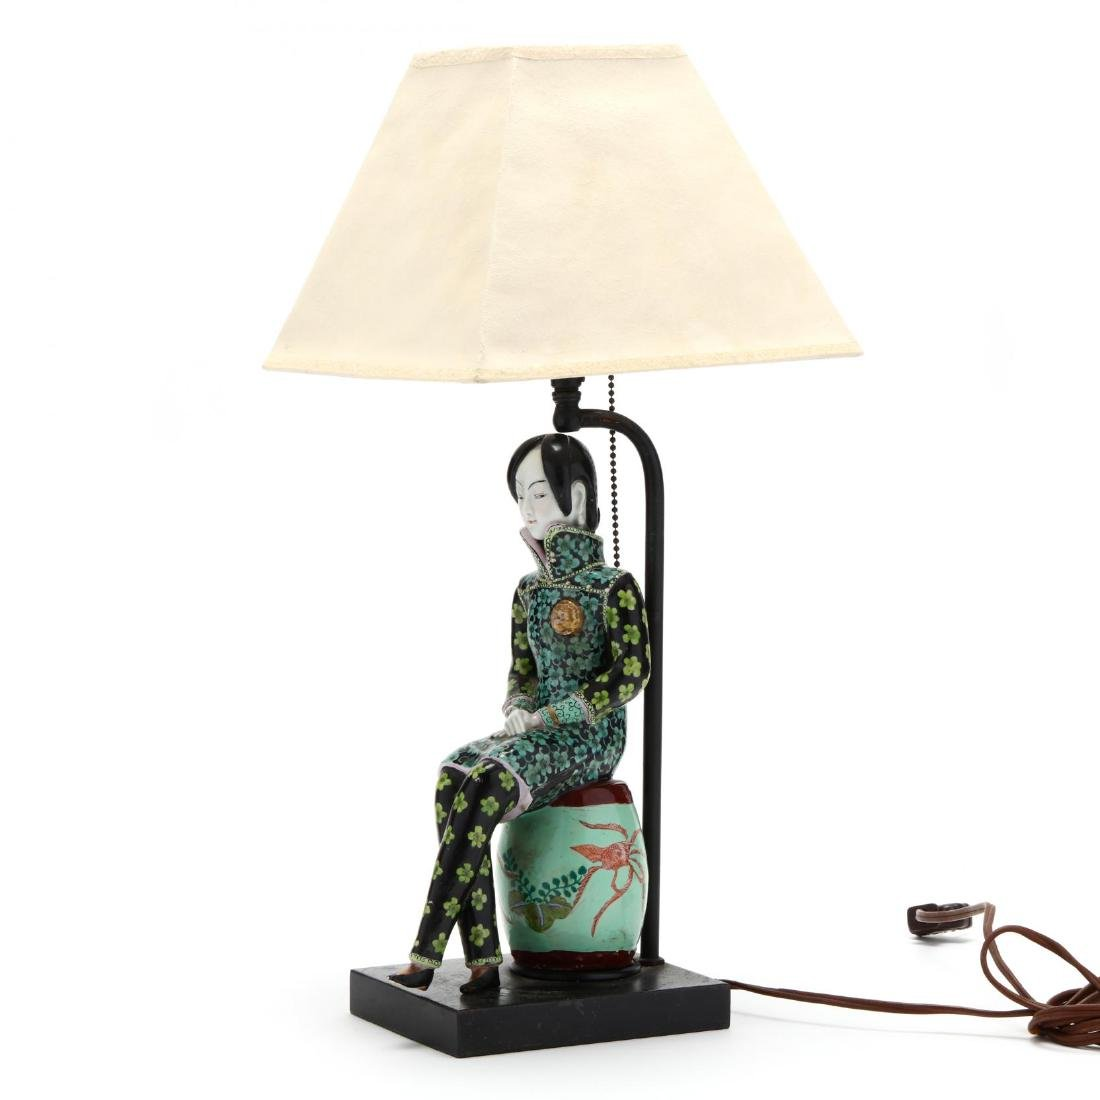 A Chinese Figurine Lamp - 2